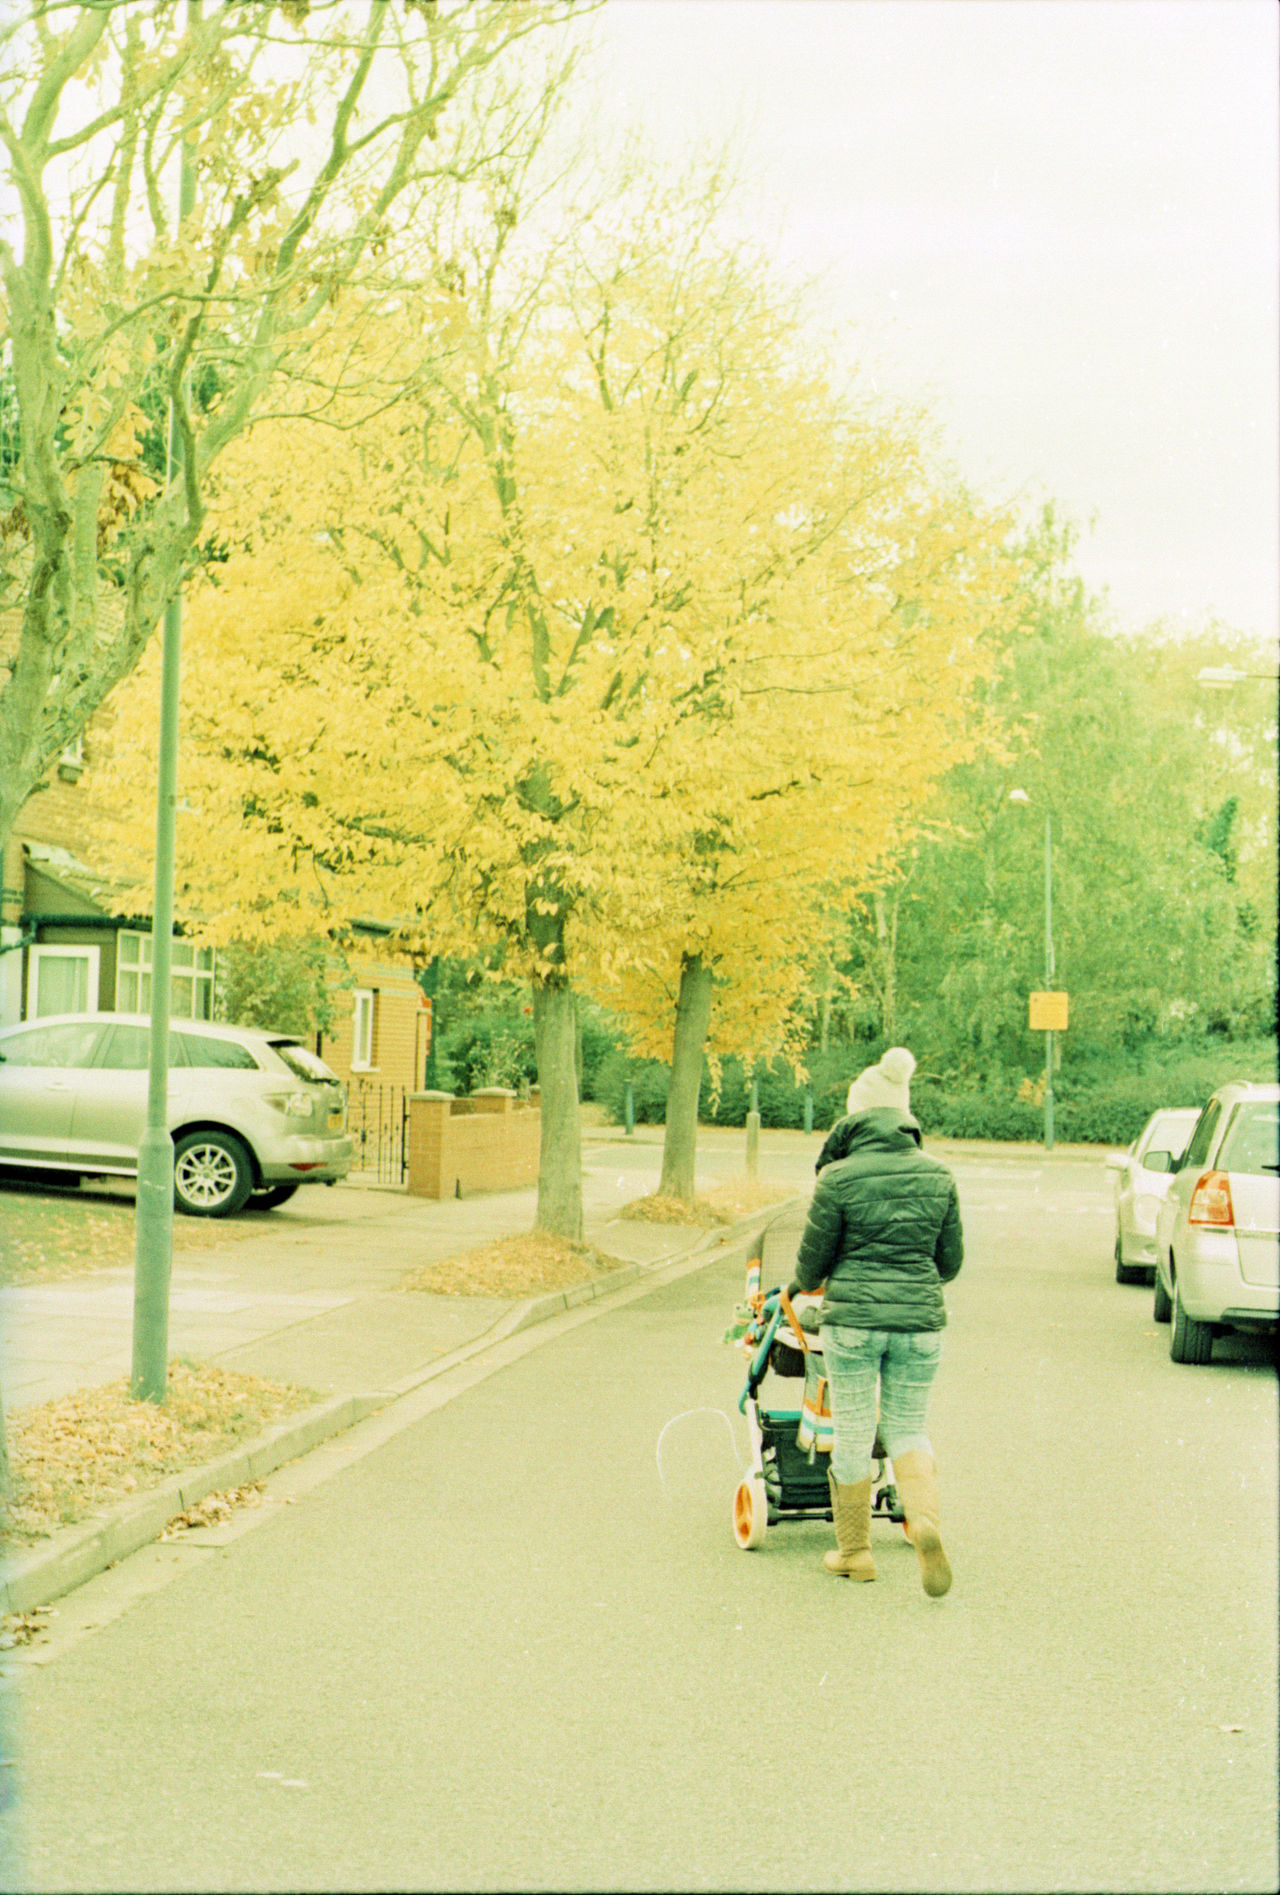 Autumn Color 35mm Film Agfa CT Precisa 100 Autumn Autumn Colors Car City Colors Crossprocess Day Film Film Photography Filmcamera Ishootfilm Land Vehicle Mode Of Transport Mother On The Move Outdoors People Real People Road Transportation Tree Two People Yellow